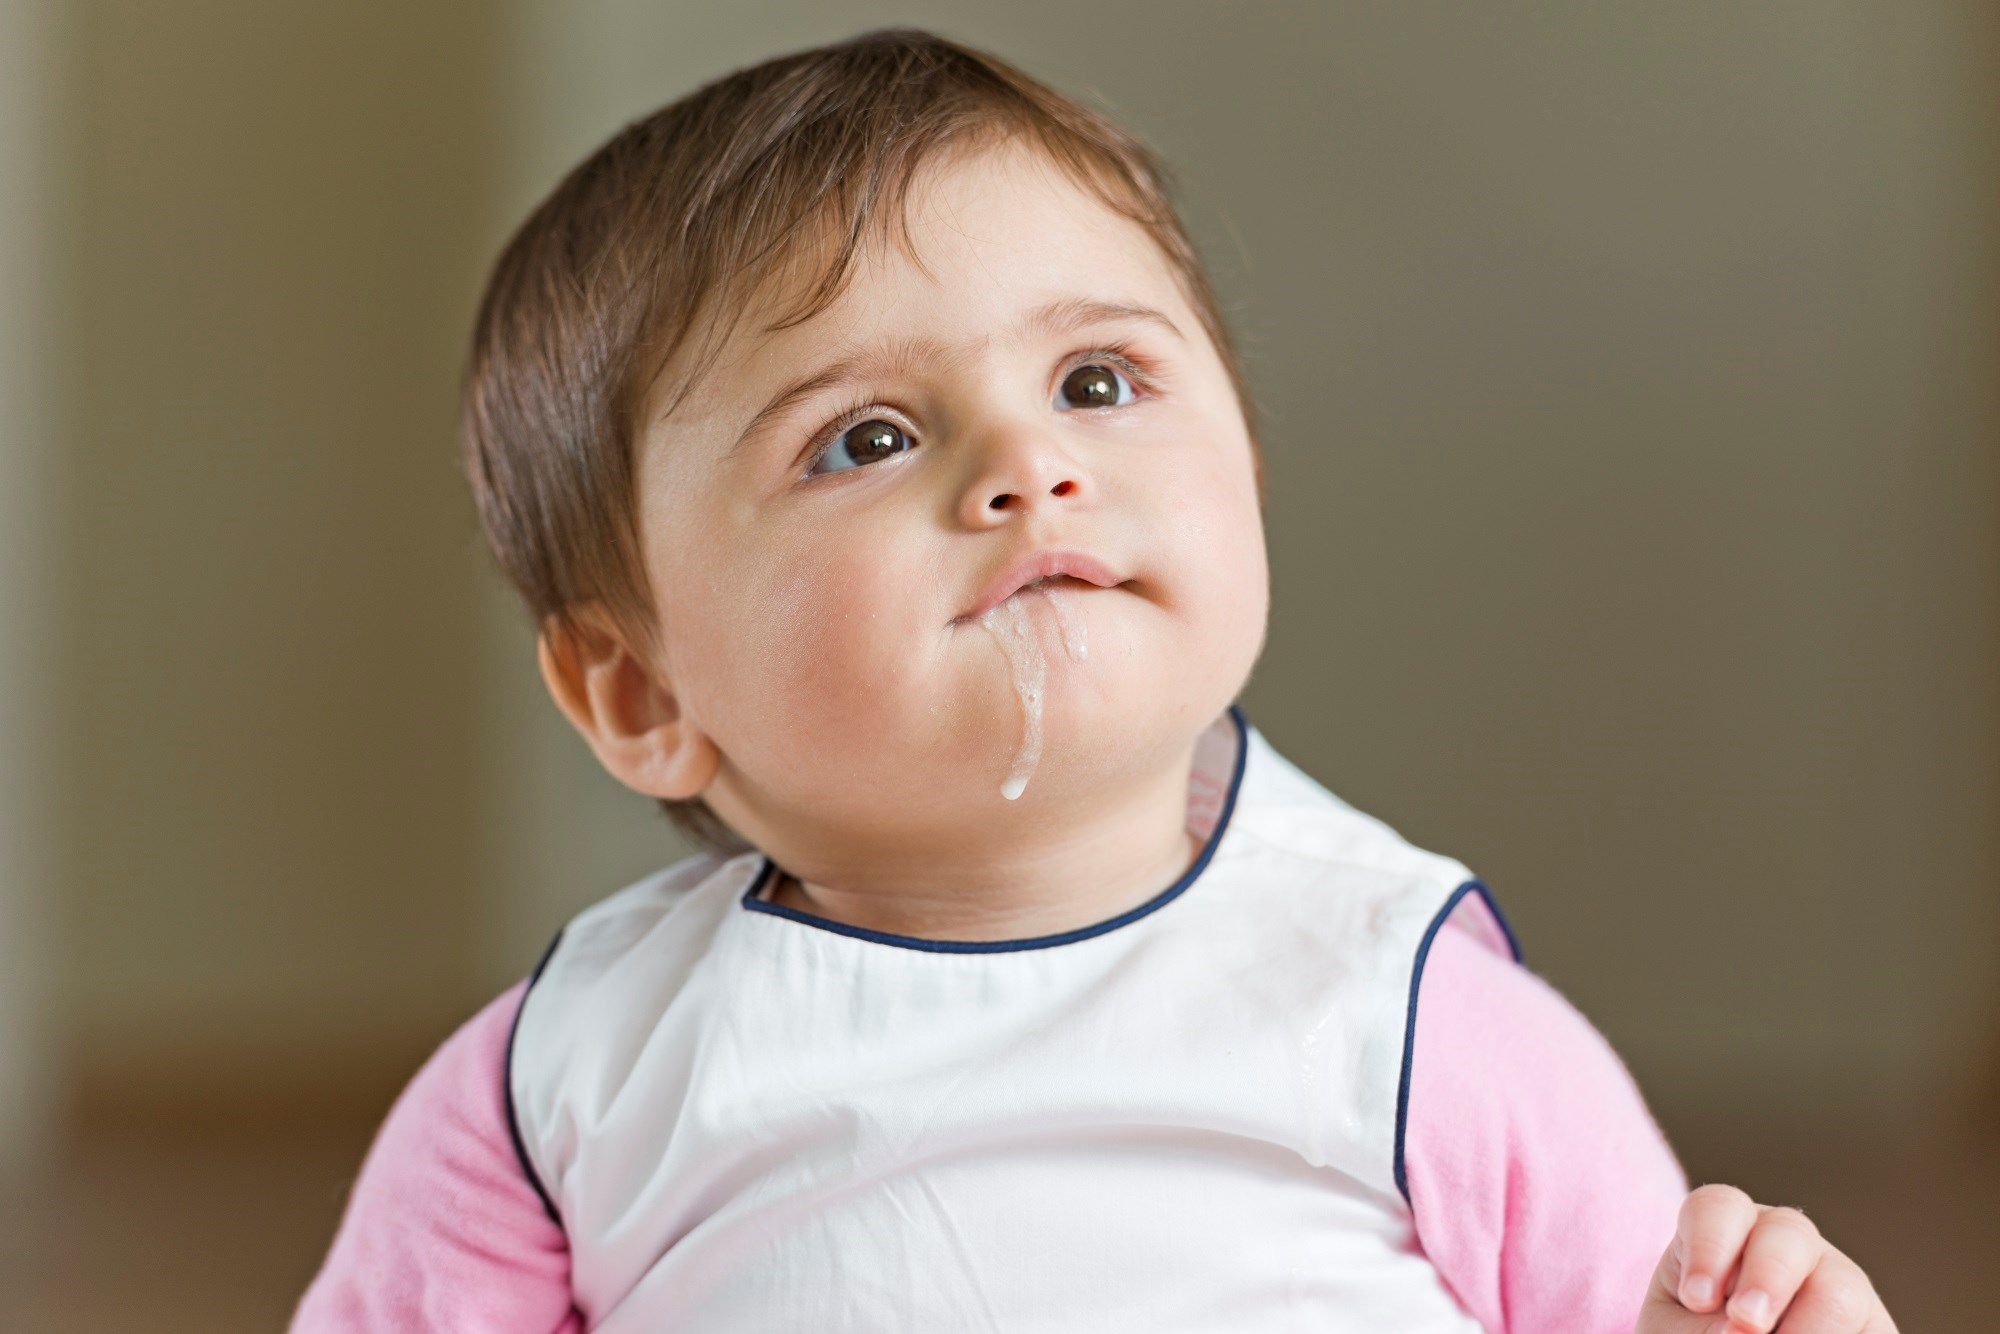 Pulmonary Symptoms With GERD in Infants May Increase Asthma Risk